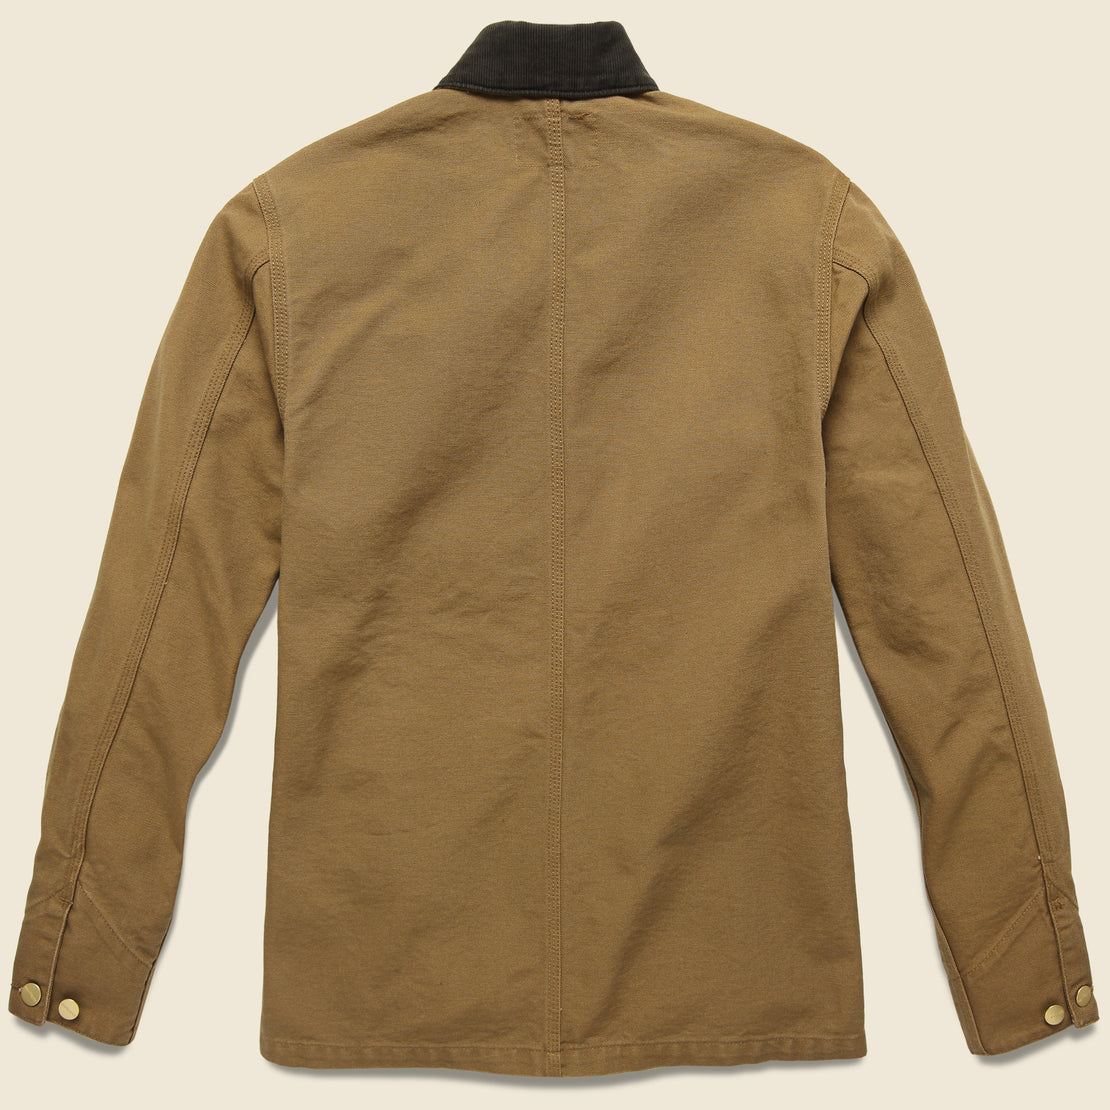 Michigan Chore Coat - Hamilton Brown/Tobacco